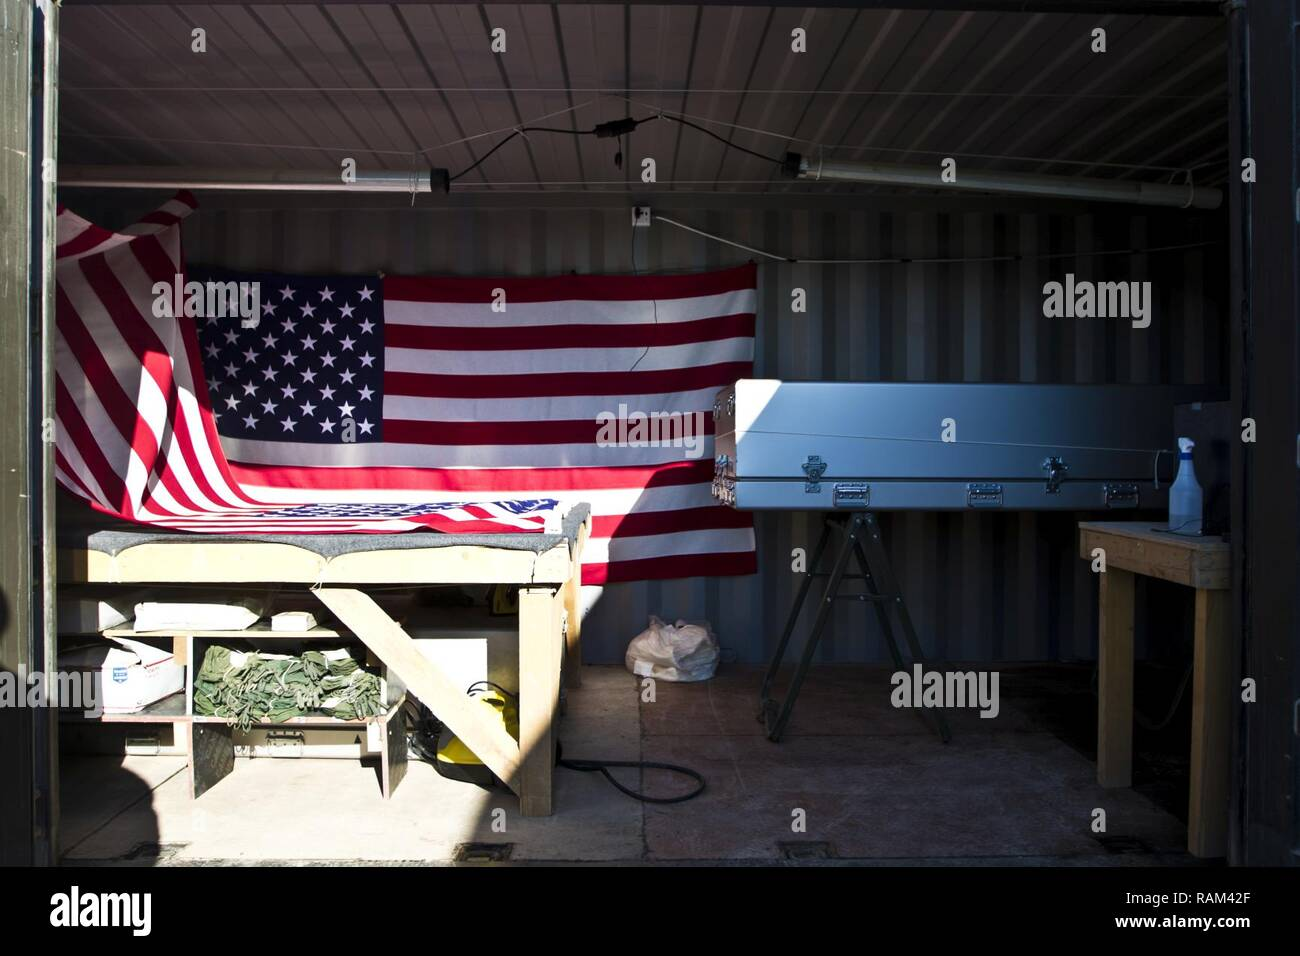 This is a container that includes a steamer and iron for removing wrinkles in flags, a rope system that can drape flags over top a transfer cases (casket) and a transfer case owned and operated by the 246th Quartermaster Company (Mortuary Affairs), in Erbil, Iraq on February 3, 2017. - Stock Image